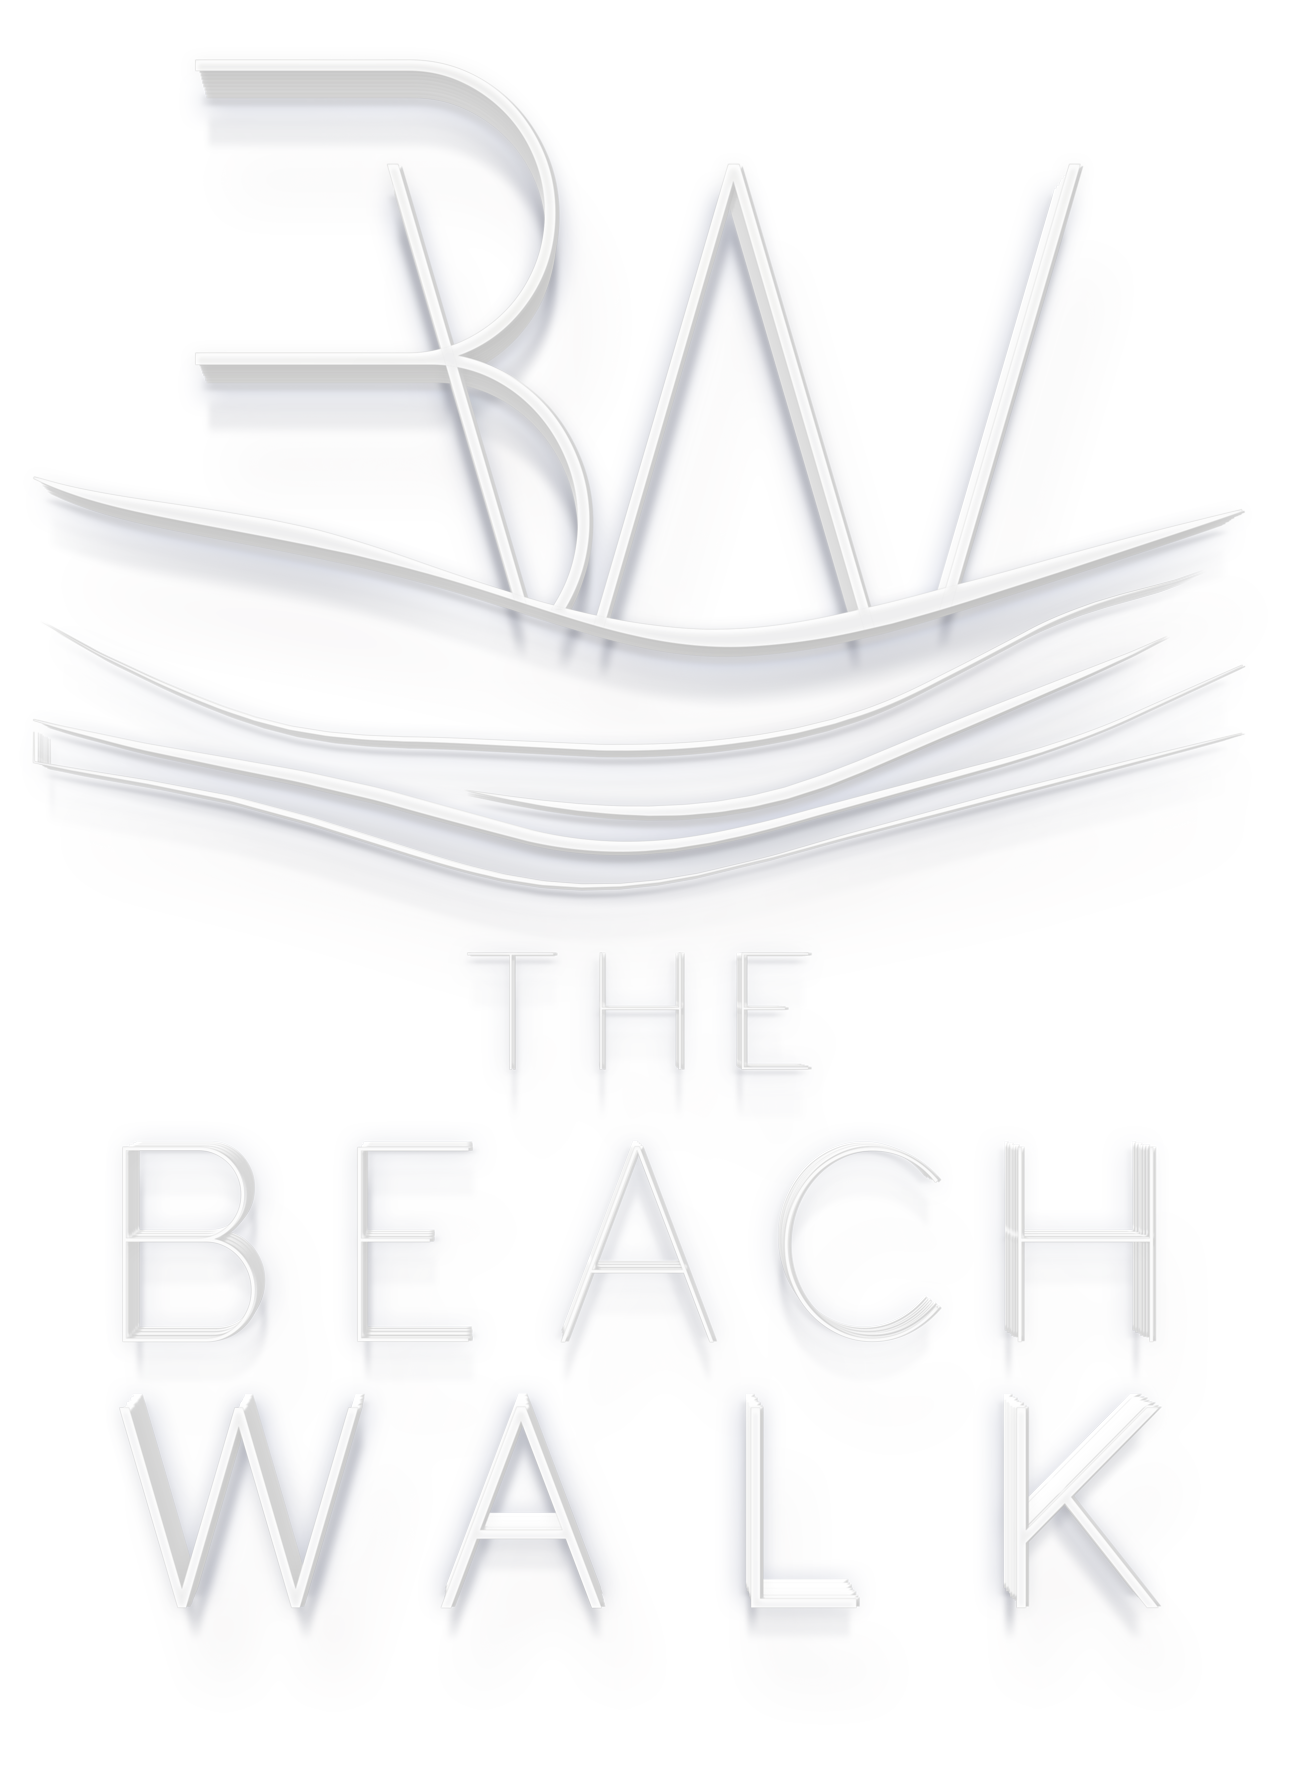 The Beachwalk